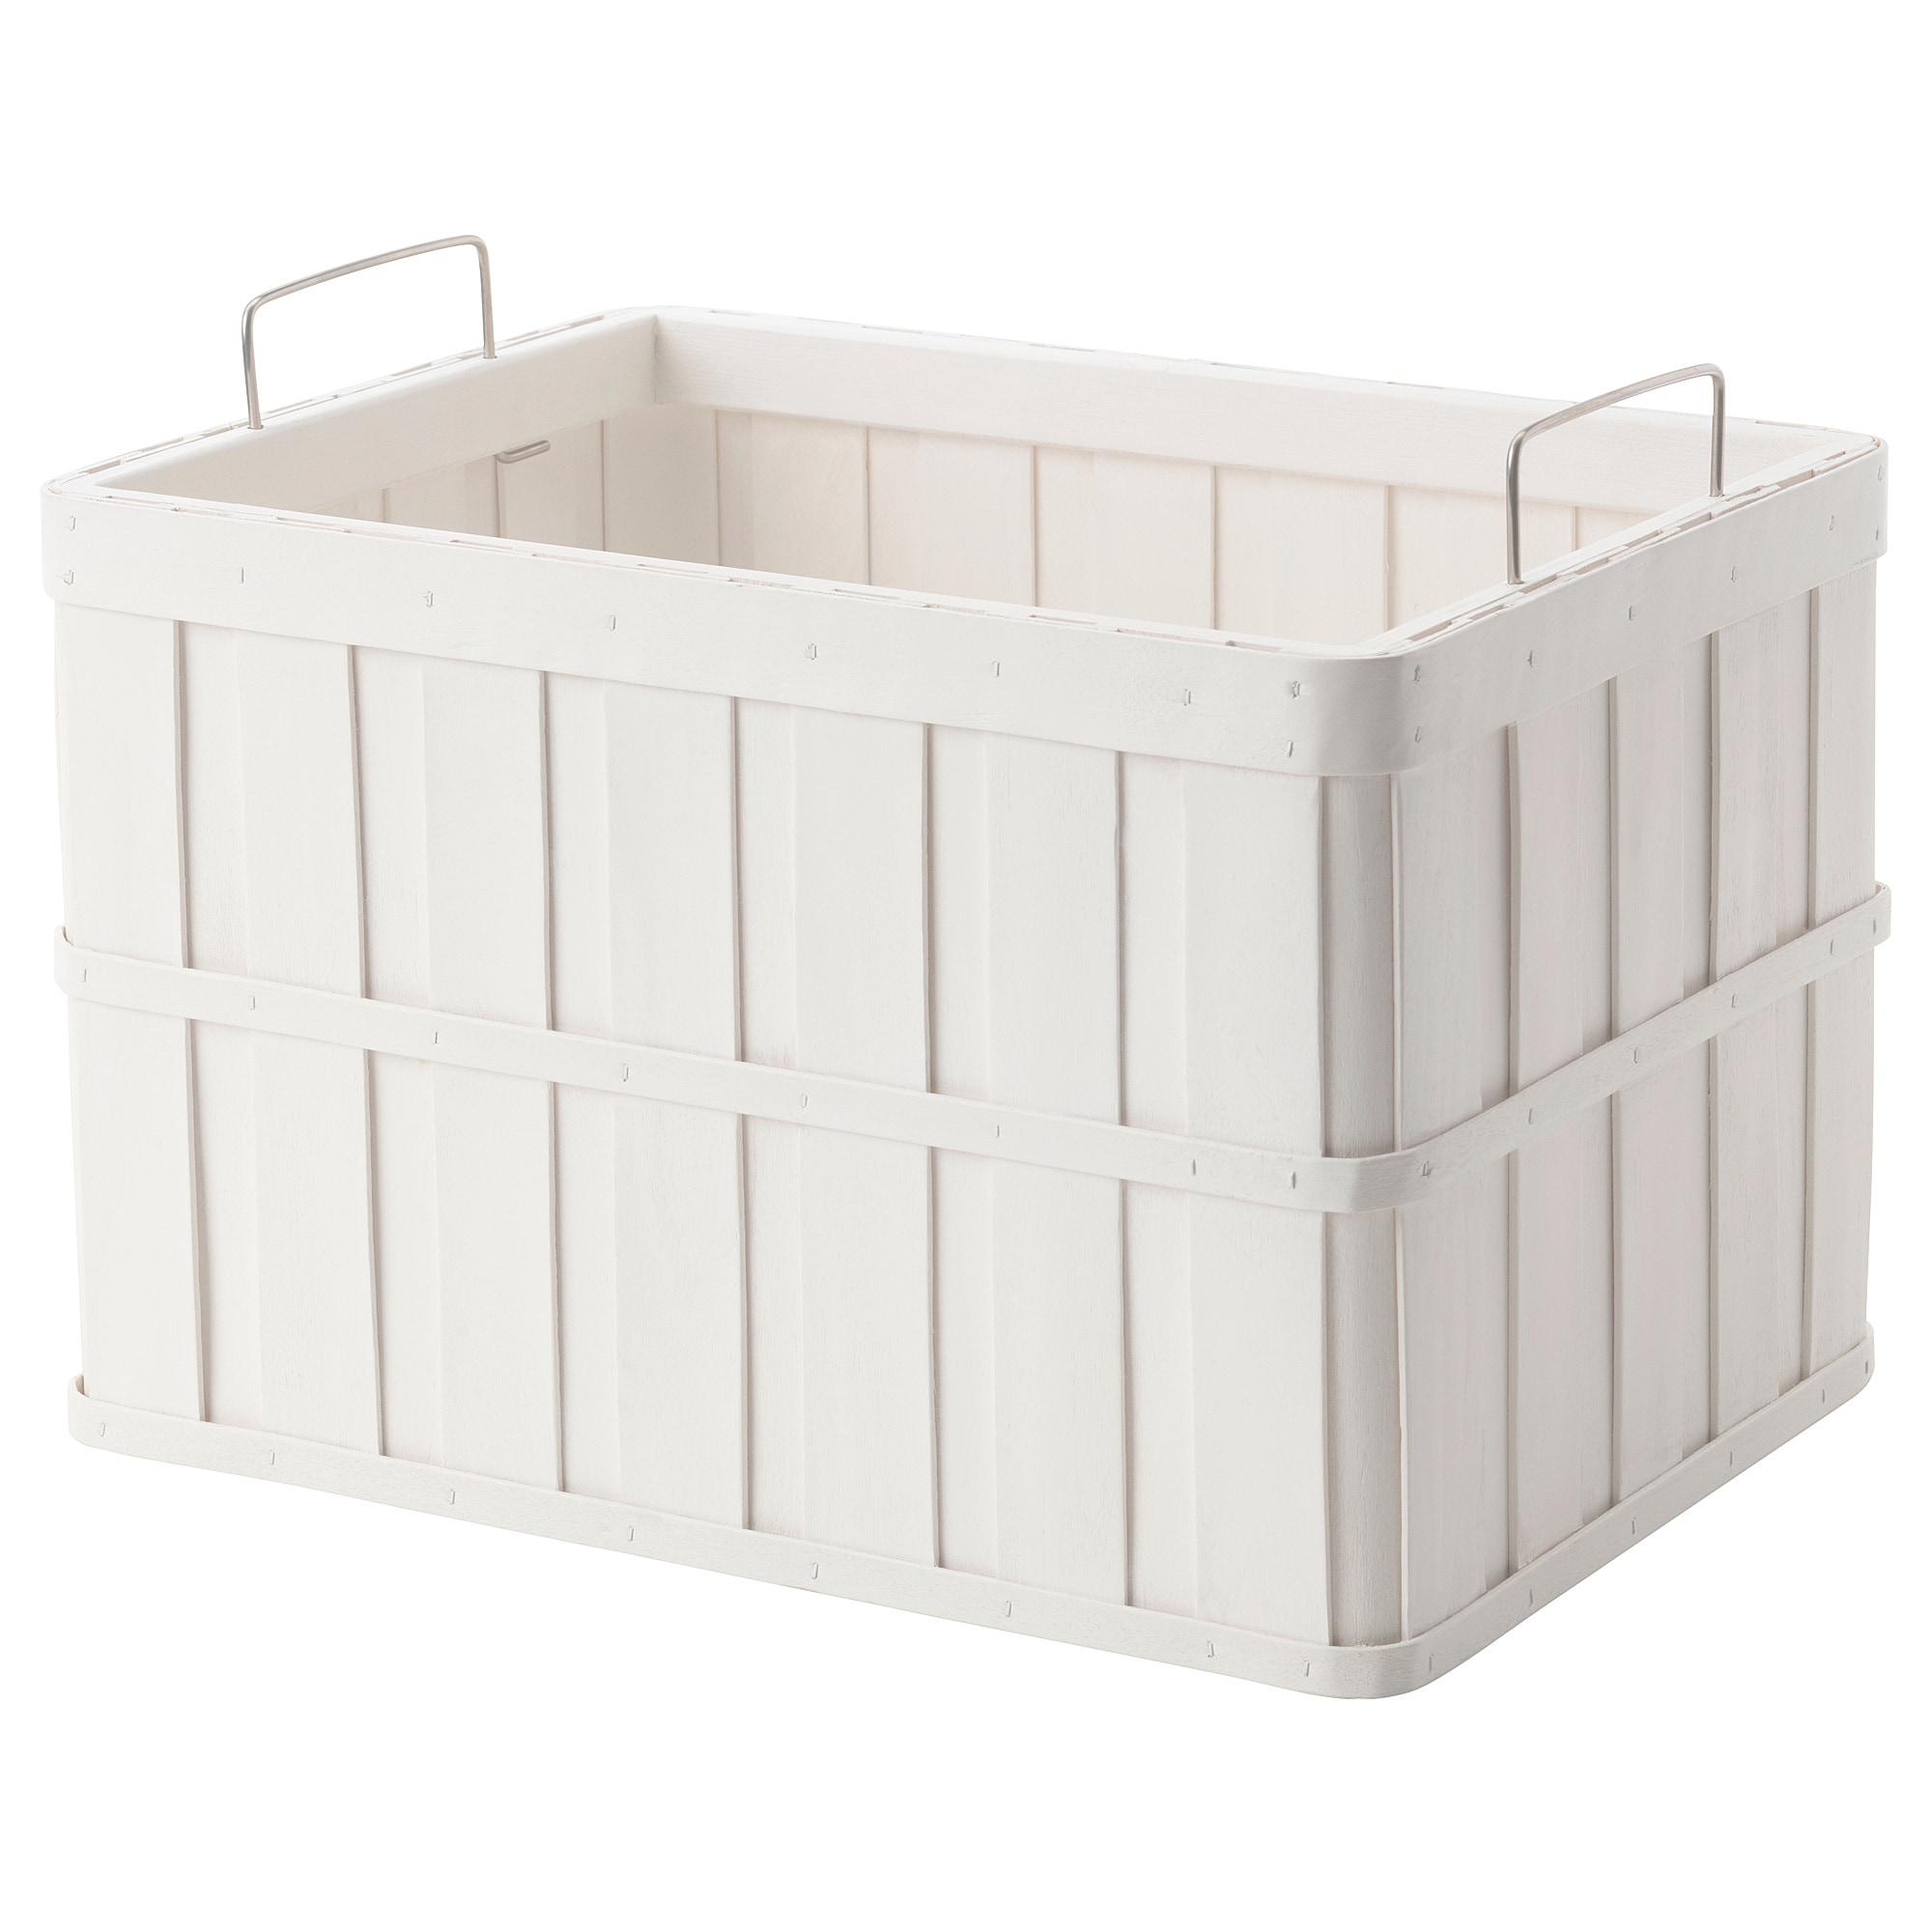 Ikea Us Furniture And Home Furnishings Ikea Storage Boxes